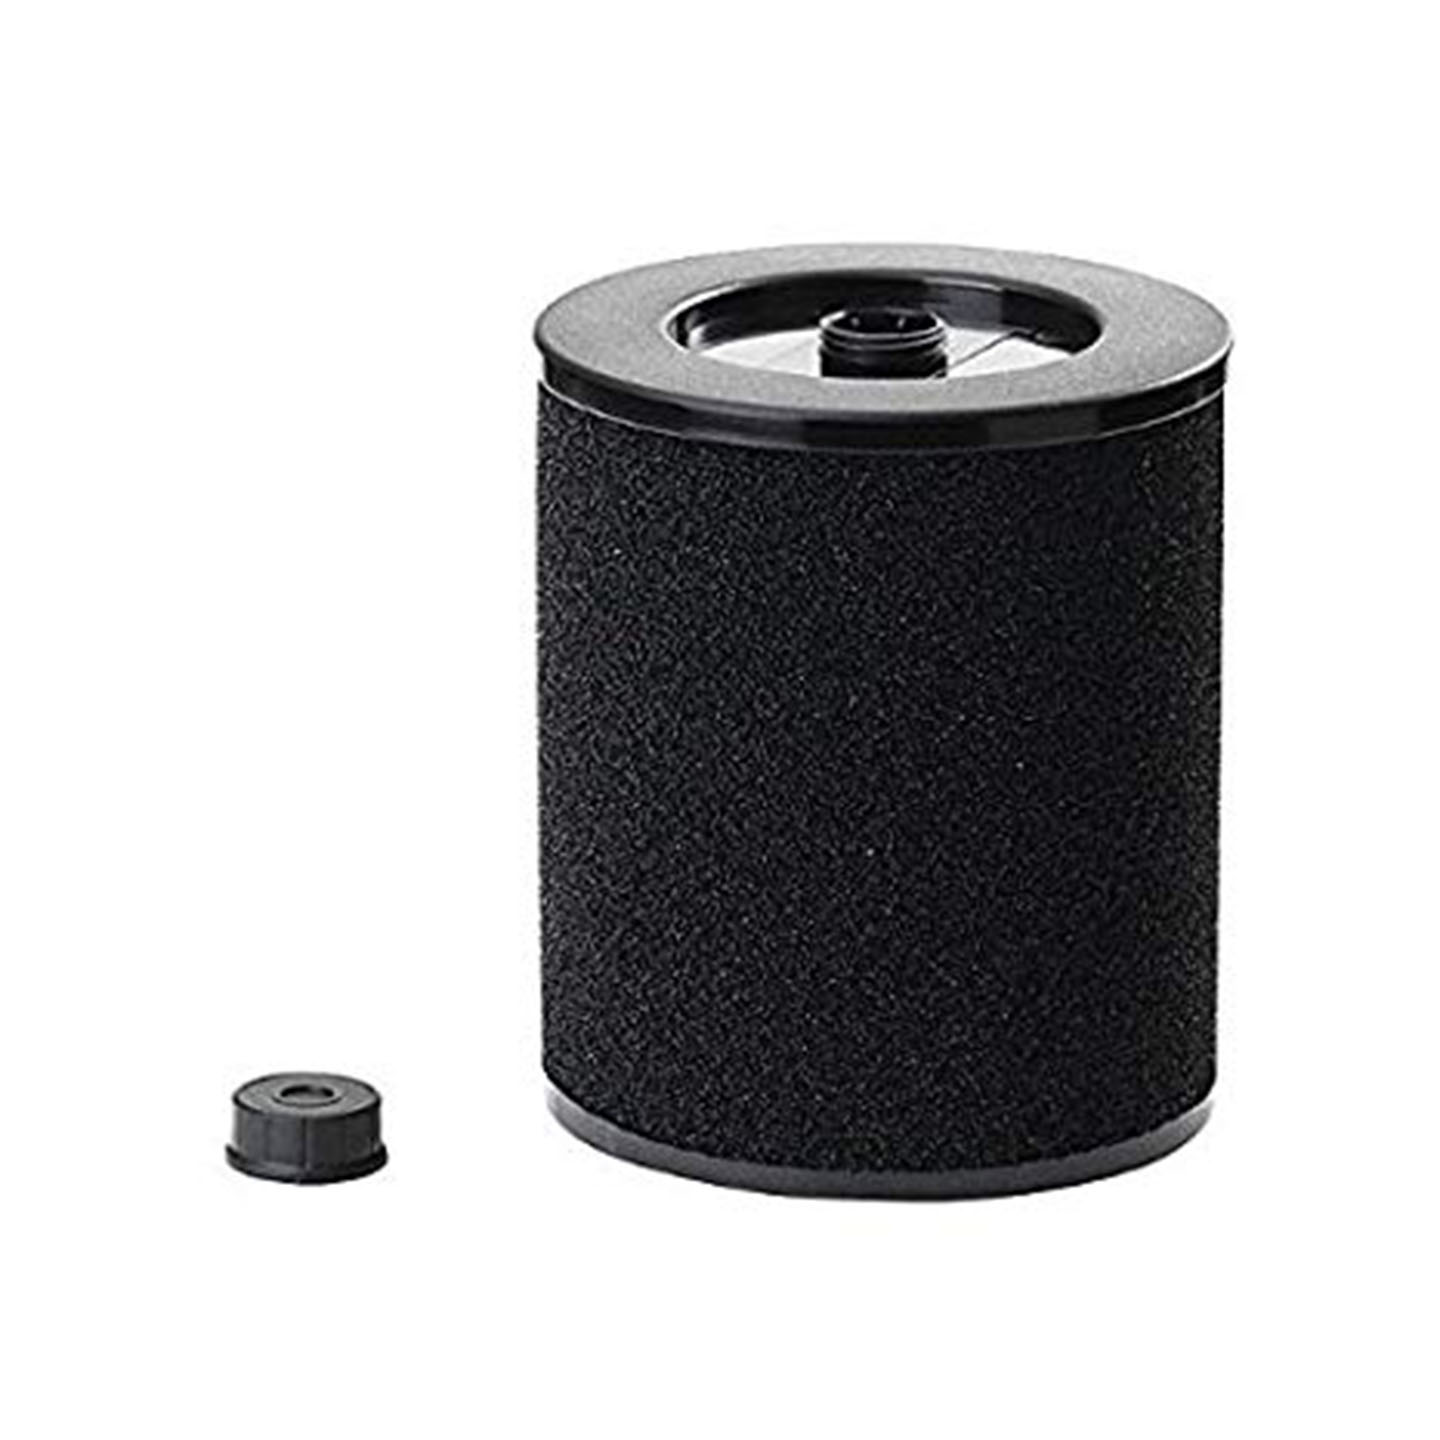 Replacement filter for craftsman 17292